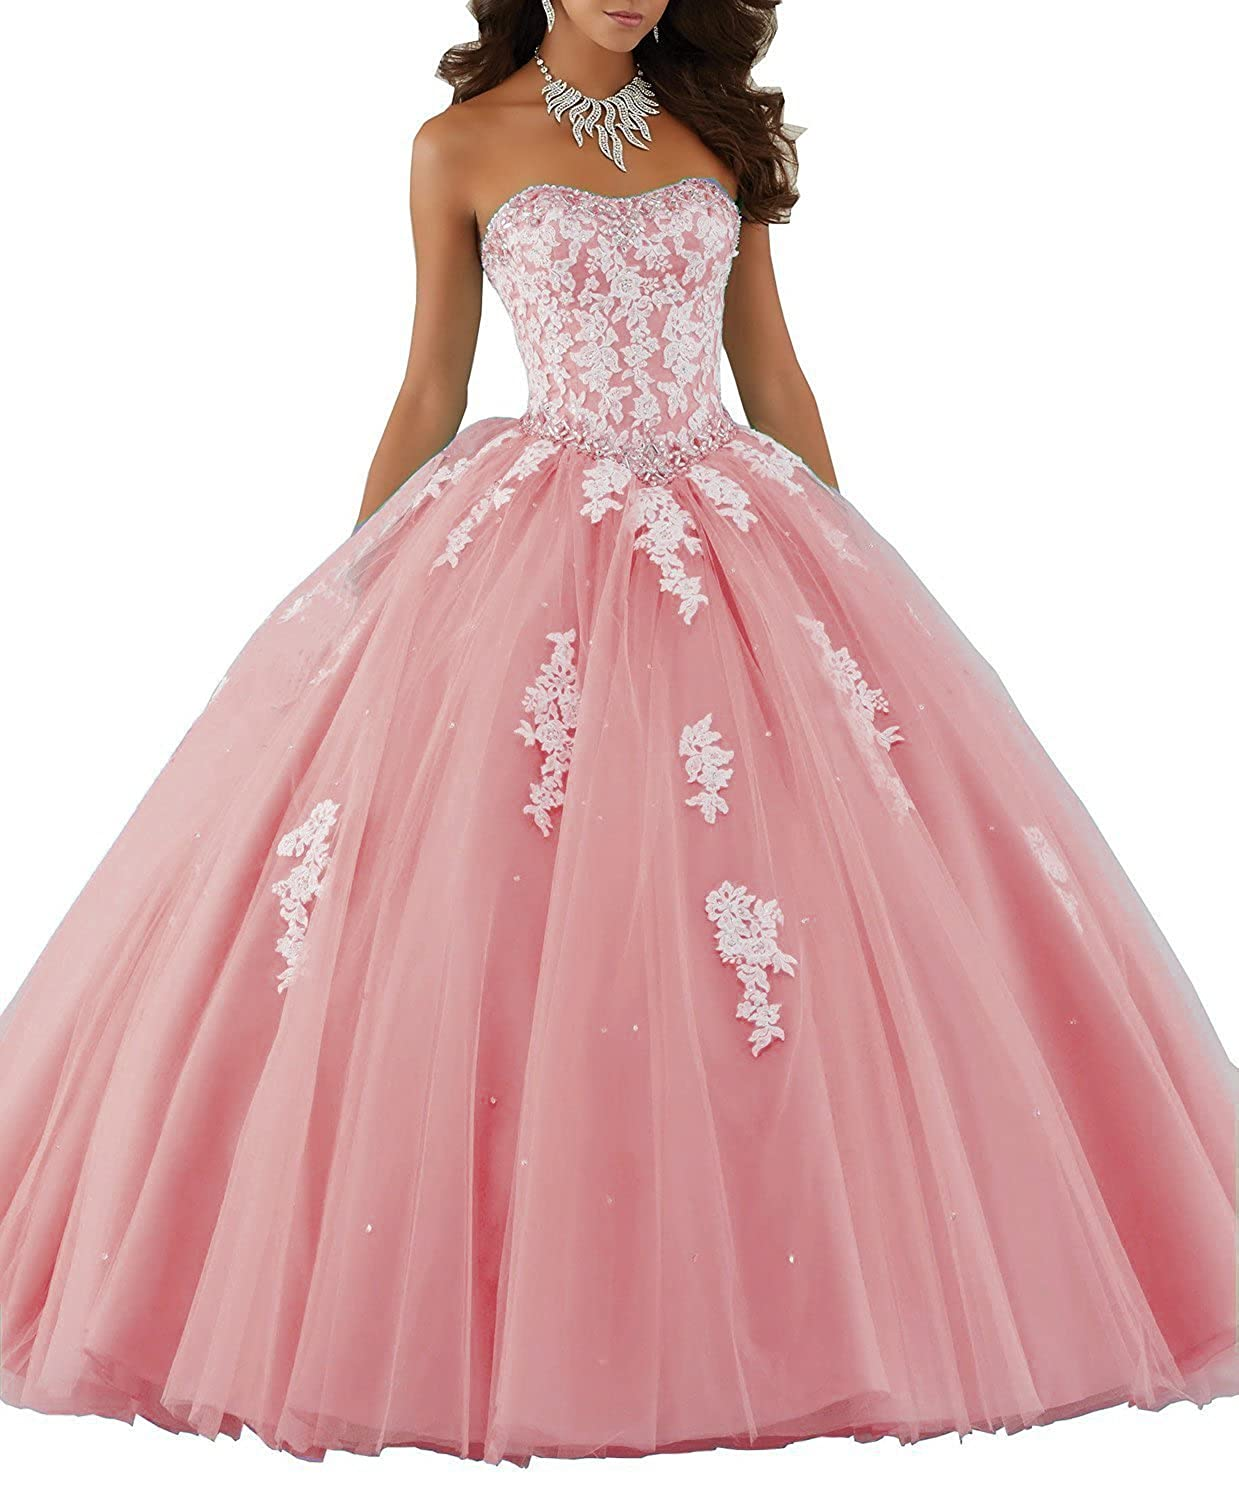 bluesh Ellenhouse Sweetheart Ball Gown Long Lace Applique Tulle Quinceanera Dress EL047